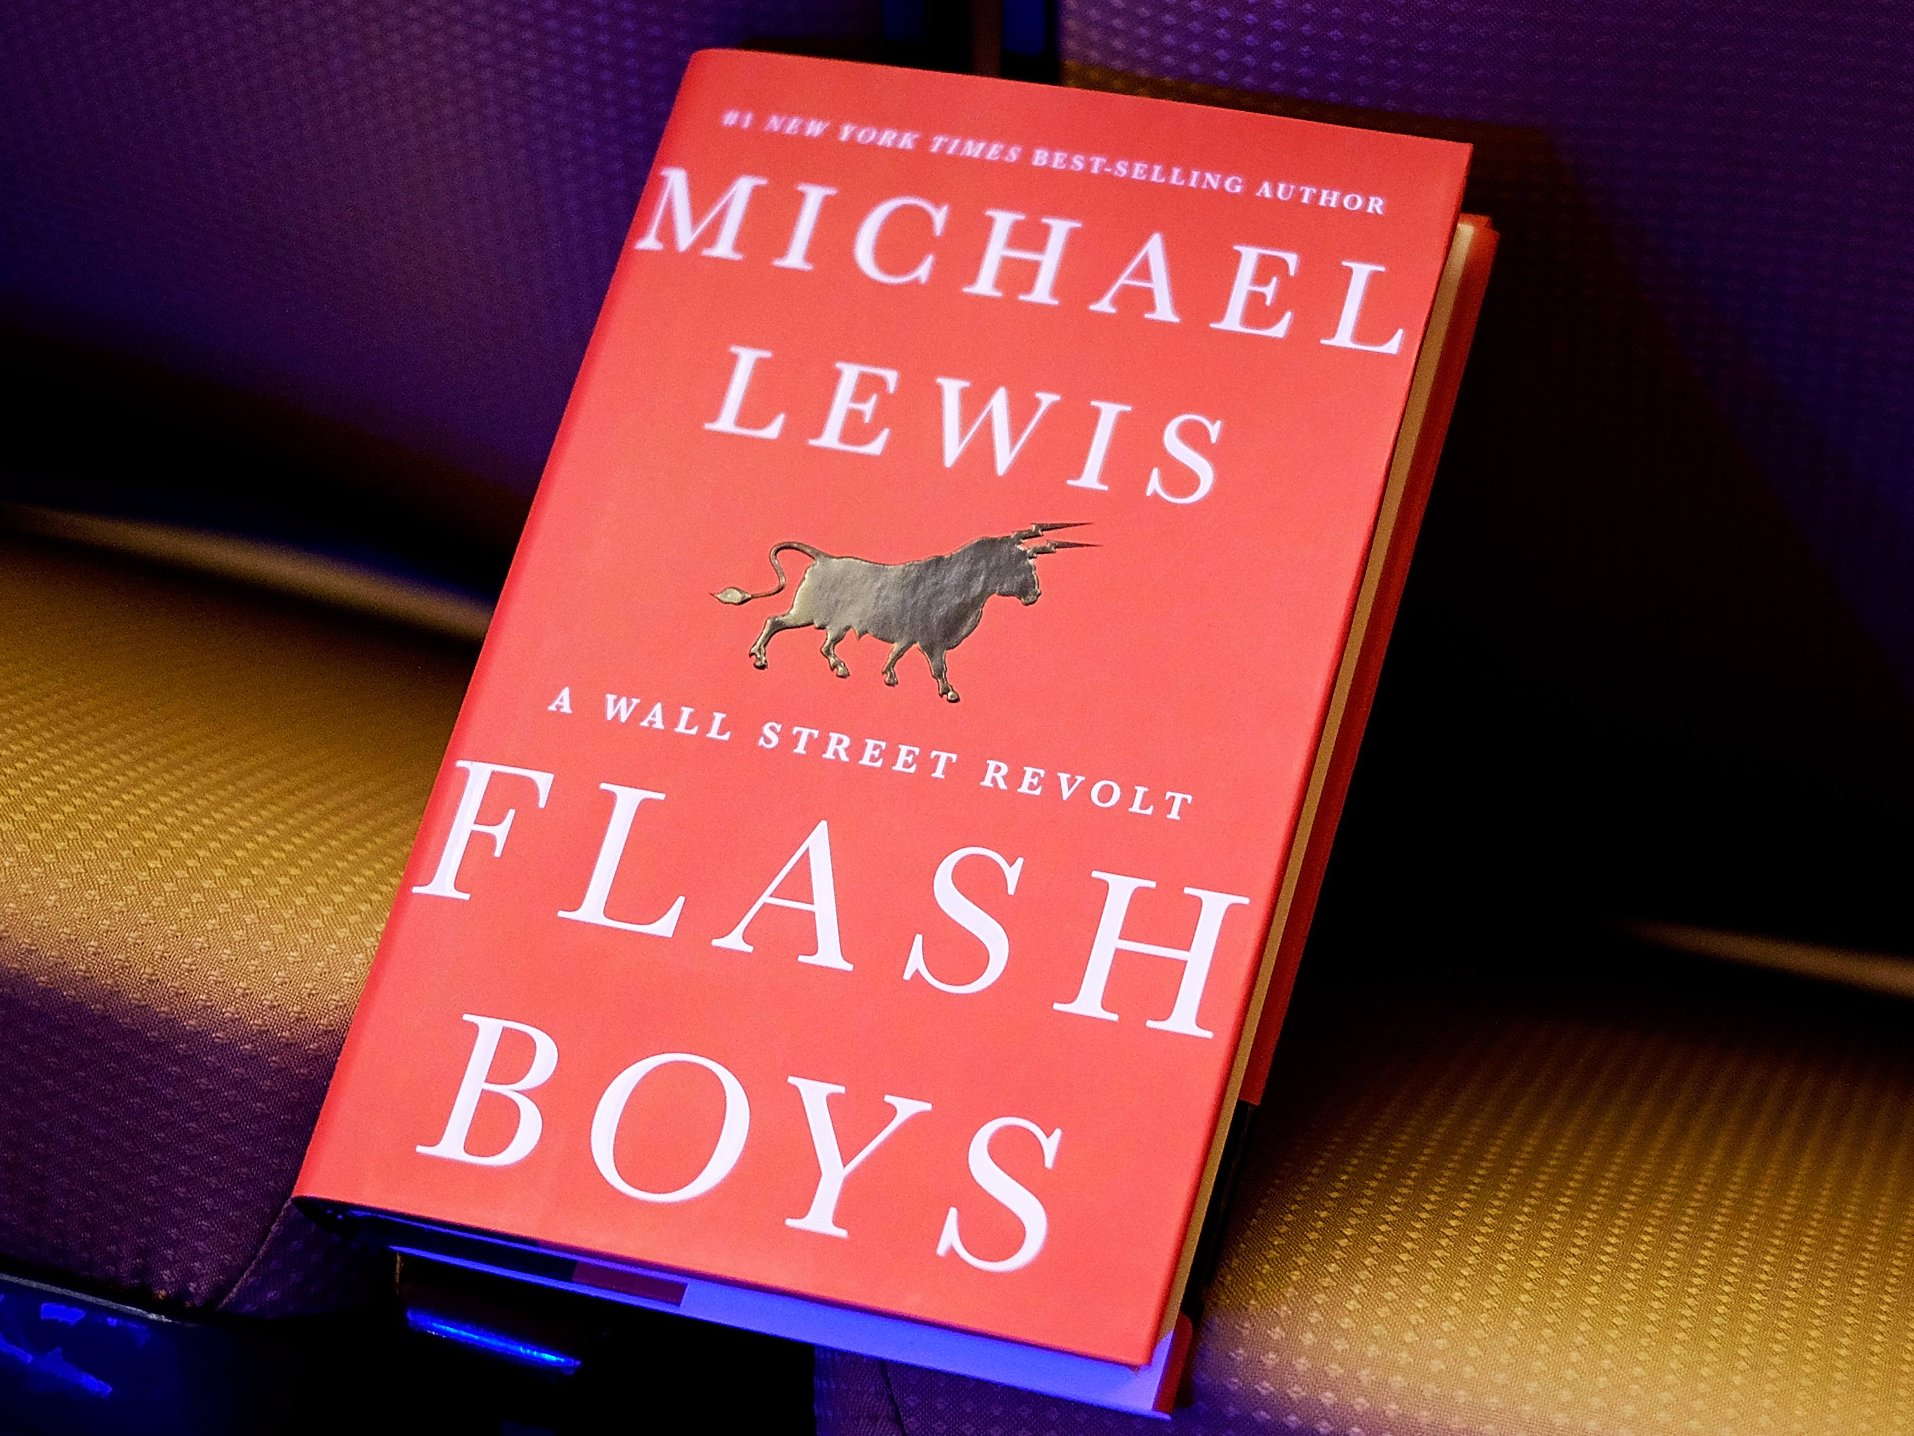 Lewis is the best-selling author behind the Oscar-nominated film adaptation  Moneyball and prize-winning drama The Big Short.